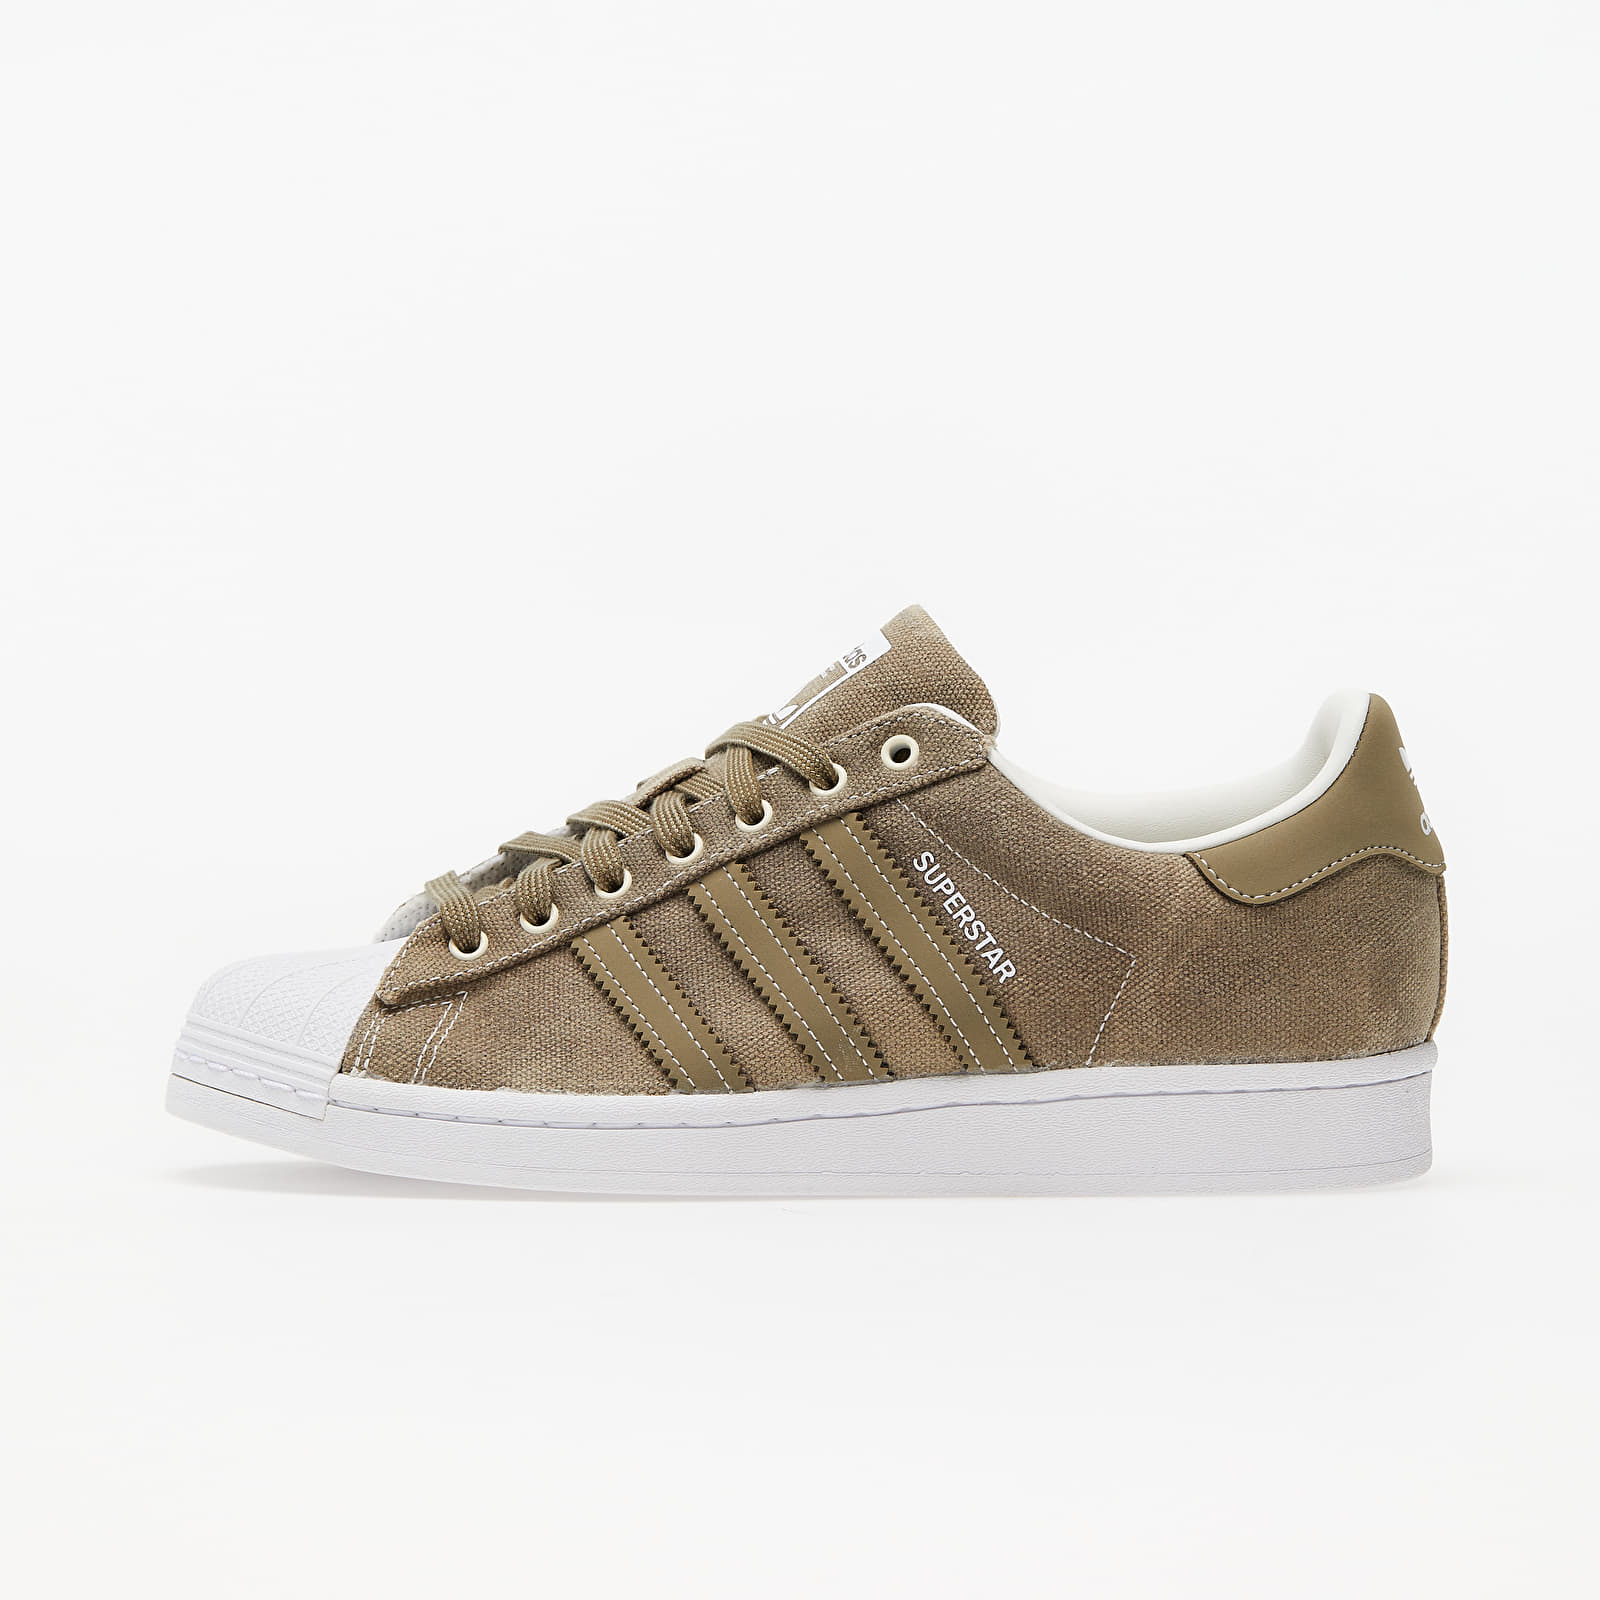 adidas Superstar Cargo/ Cargo/ Off White EUR 42